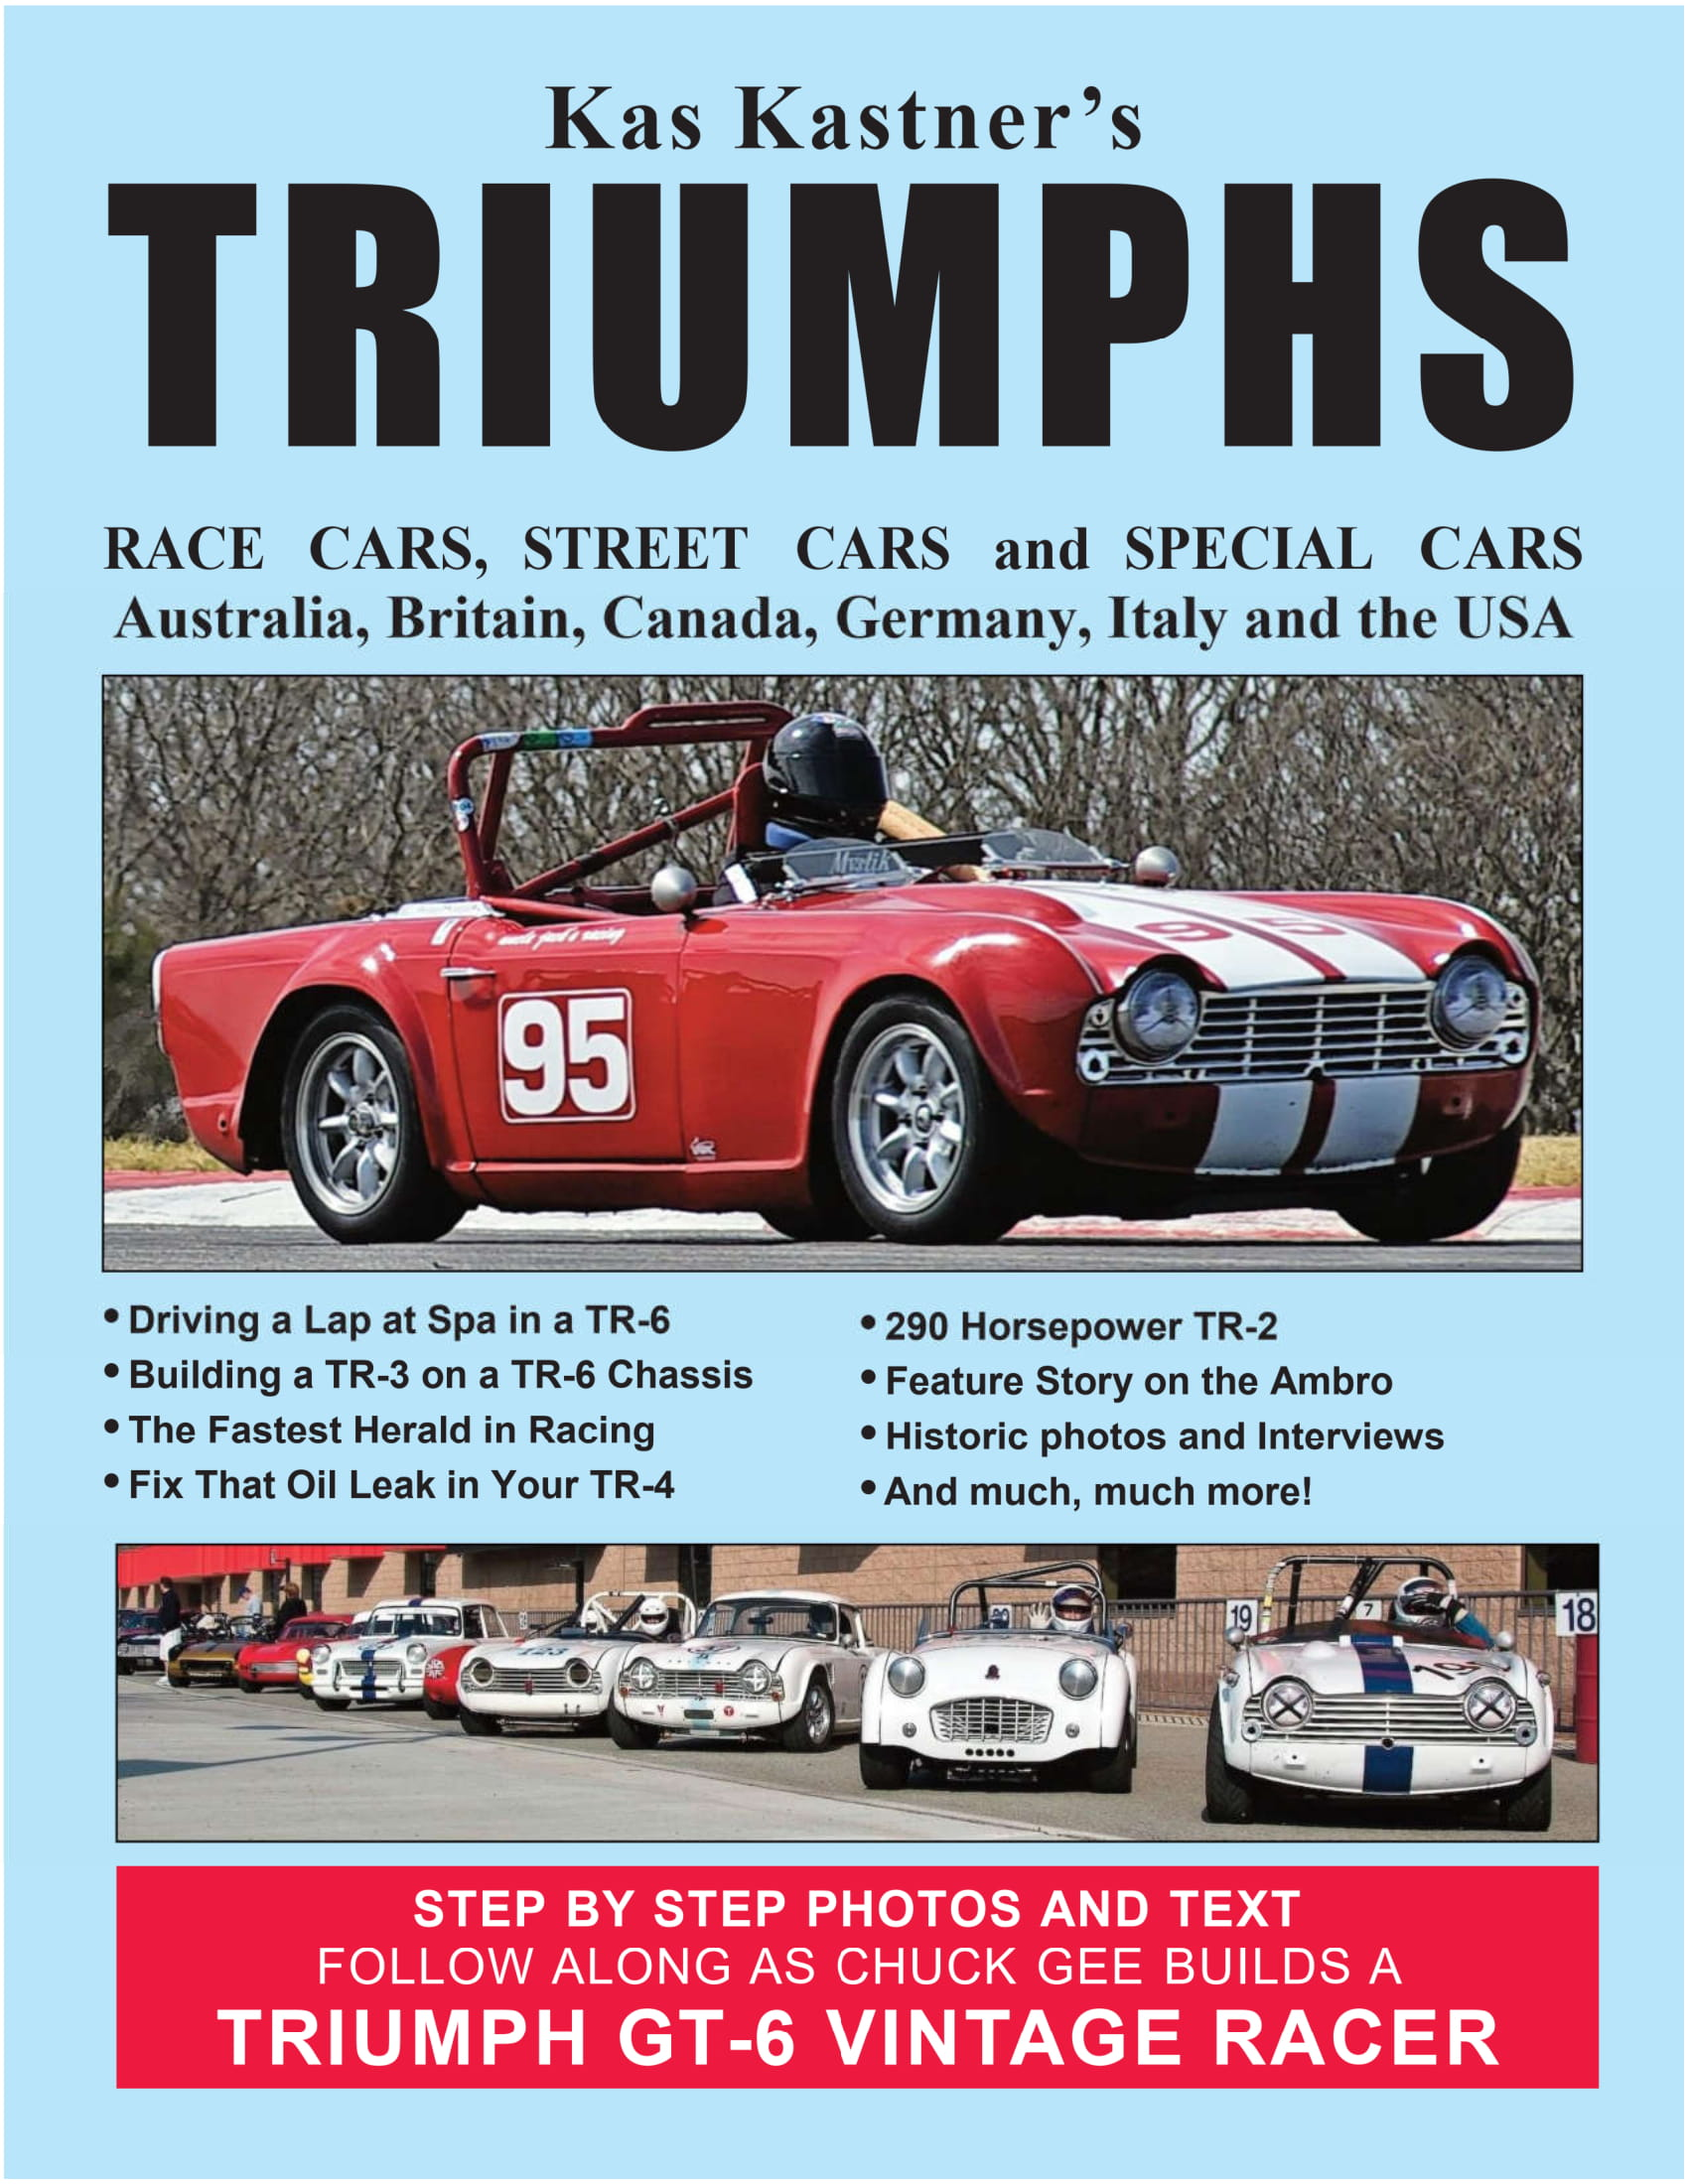 Kas Kastners Triumphs, Race Cars, Street Cars and Special Cars